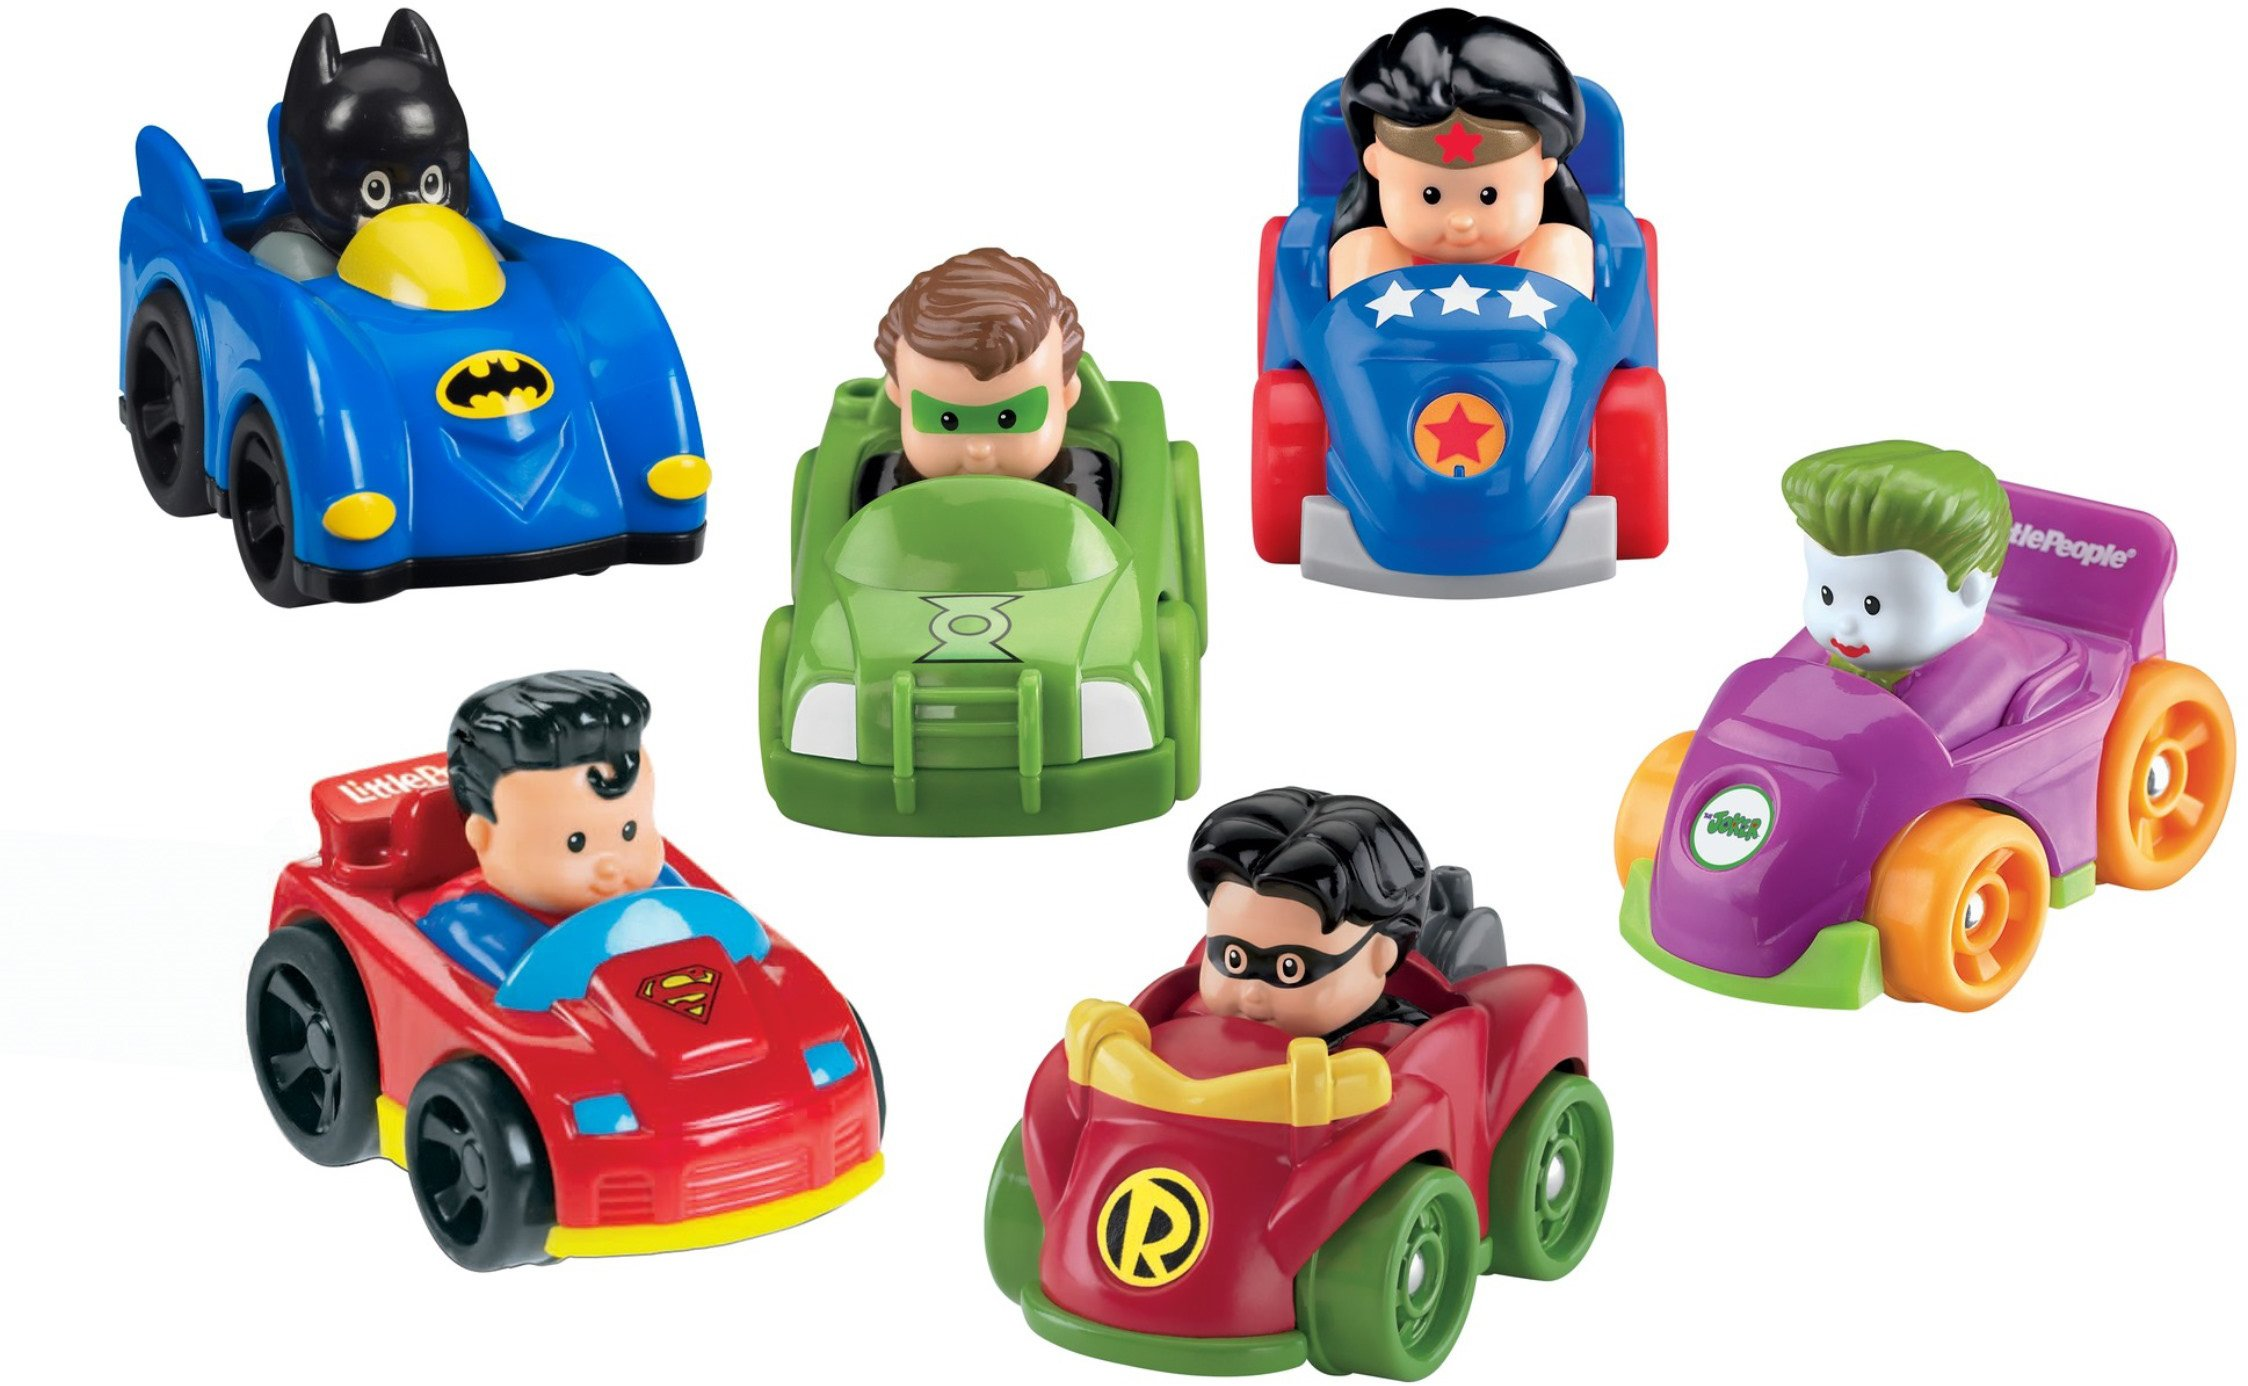 Fisher-Price Little People DC Super Friends, Wheelies Gift Set (6 Pack) [Amazon Exclusive] by Fisher-Price